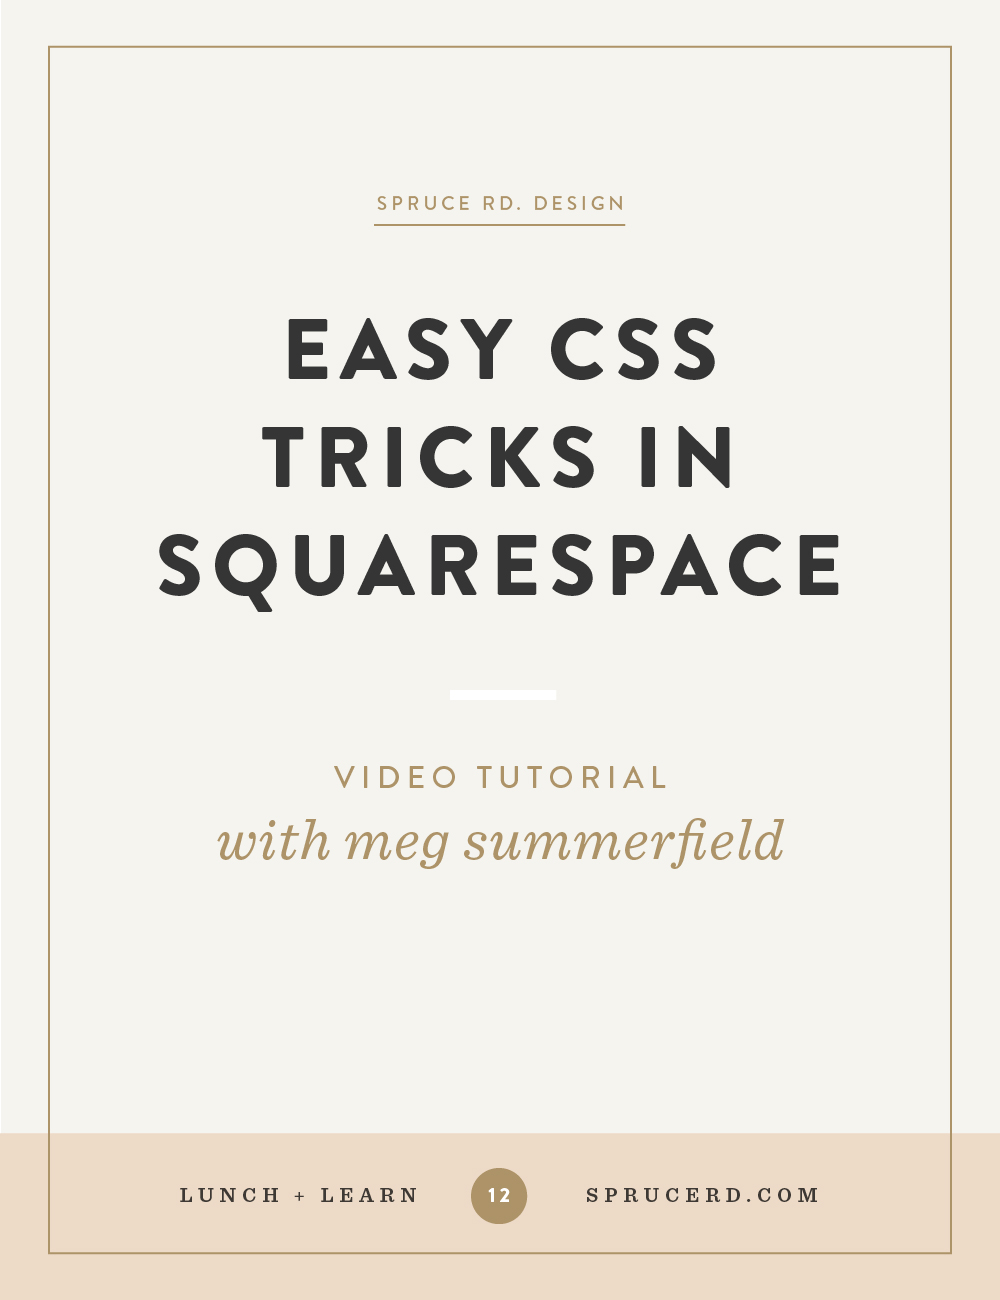 Easy CSS tricks in Squarespace — Spruce Rd